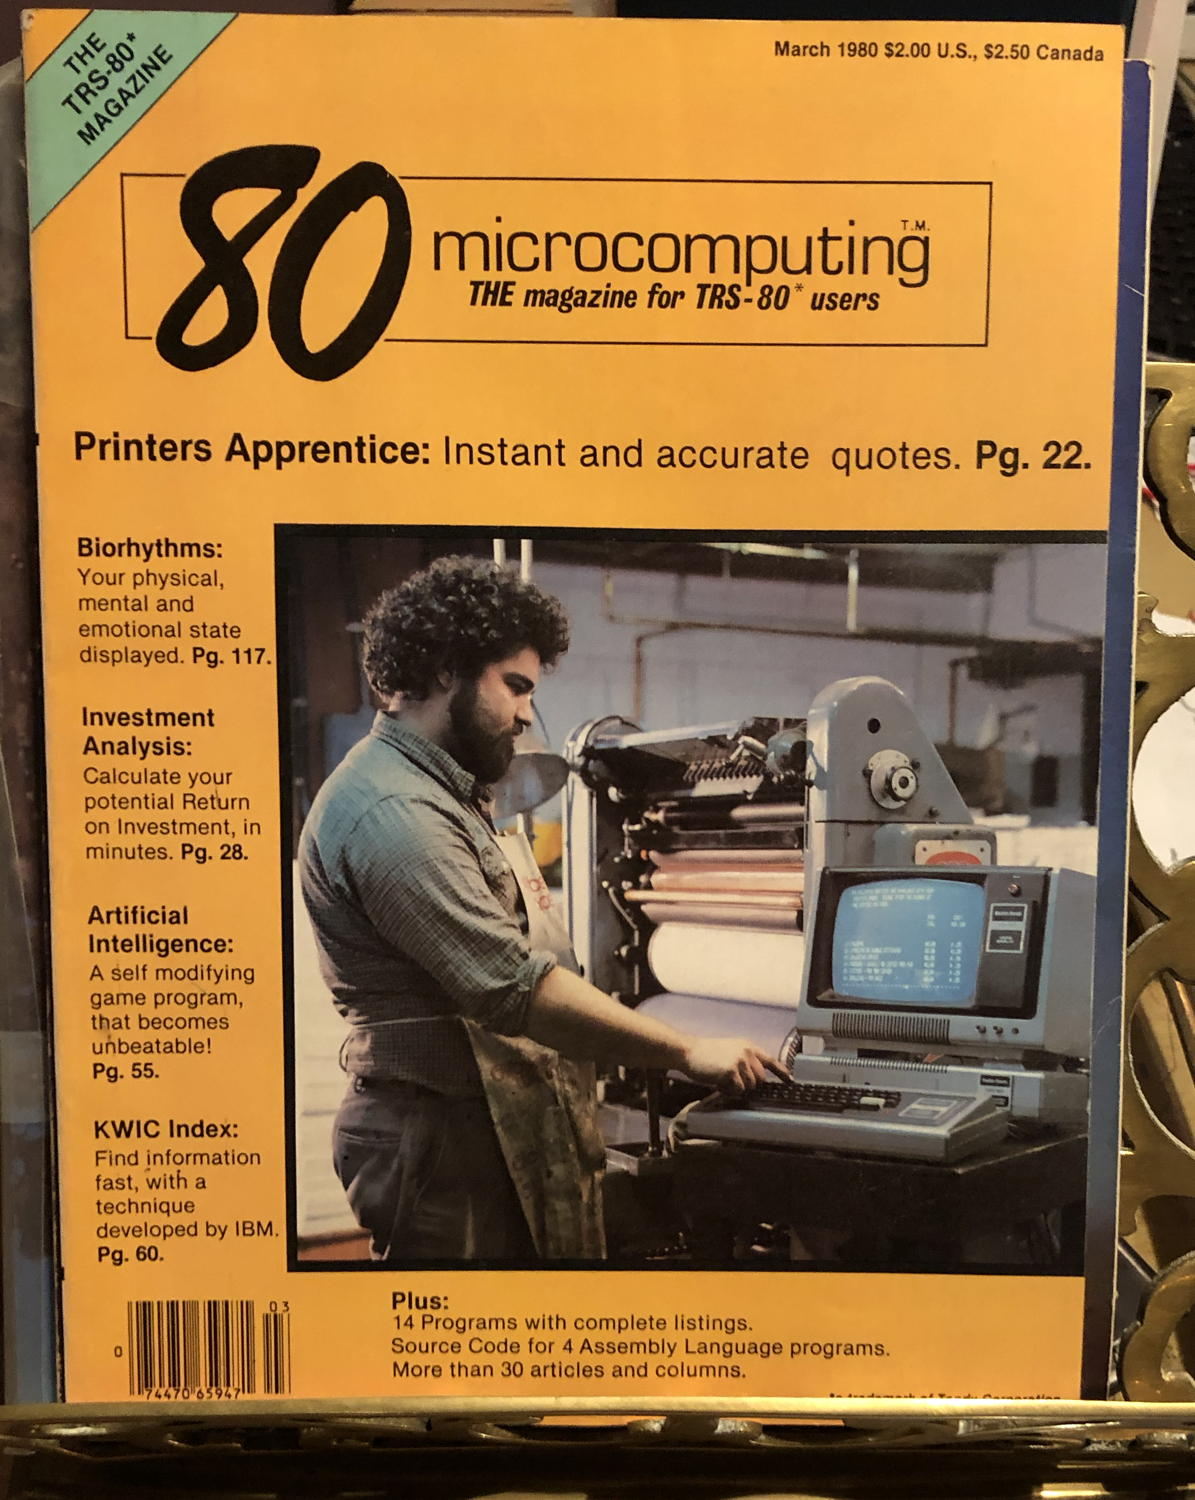 80 microcomputing March 1980